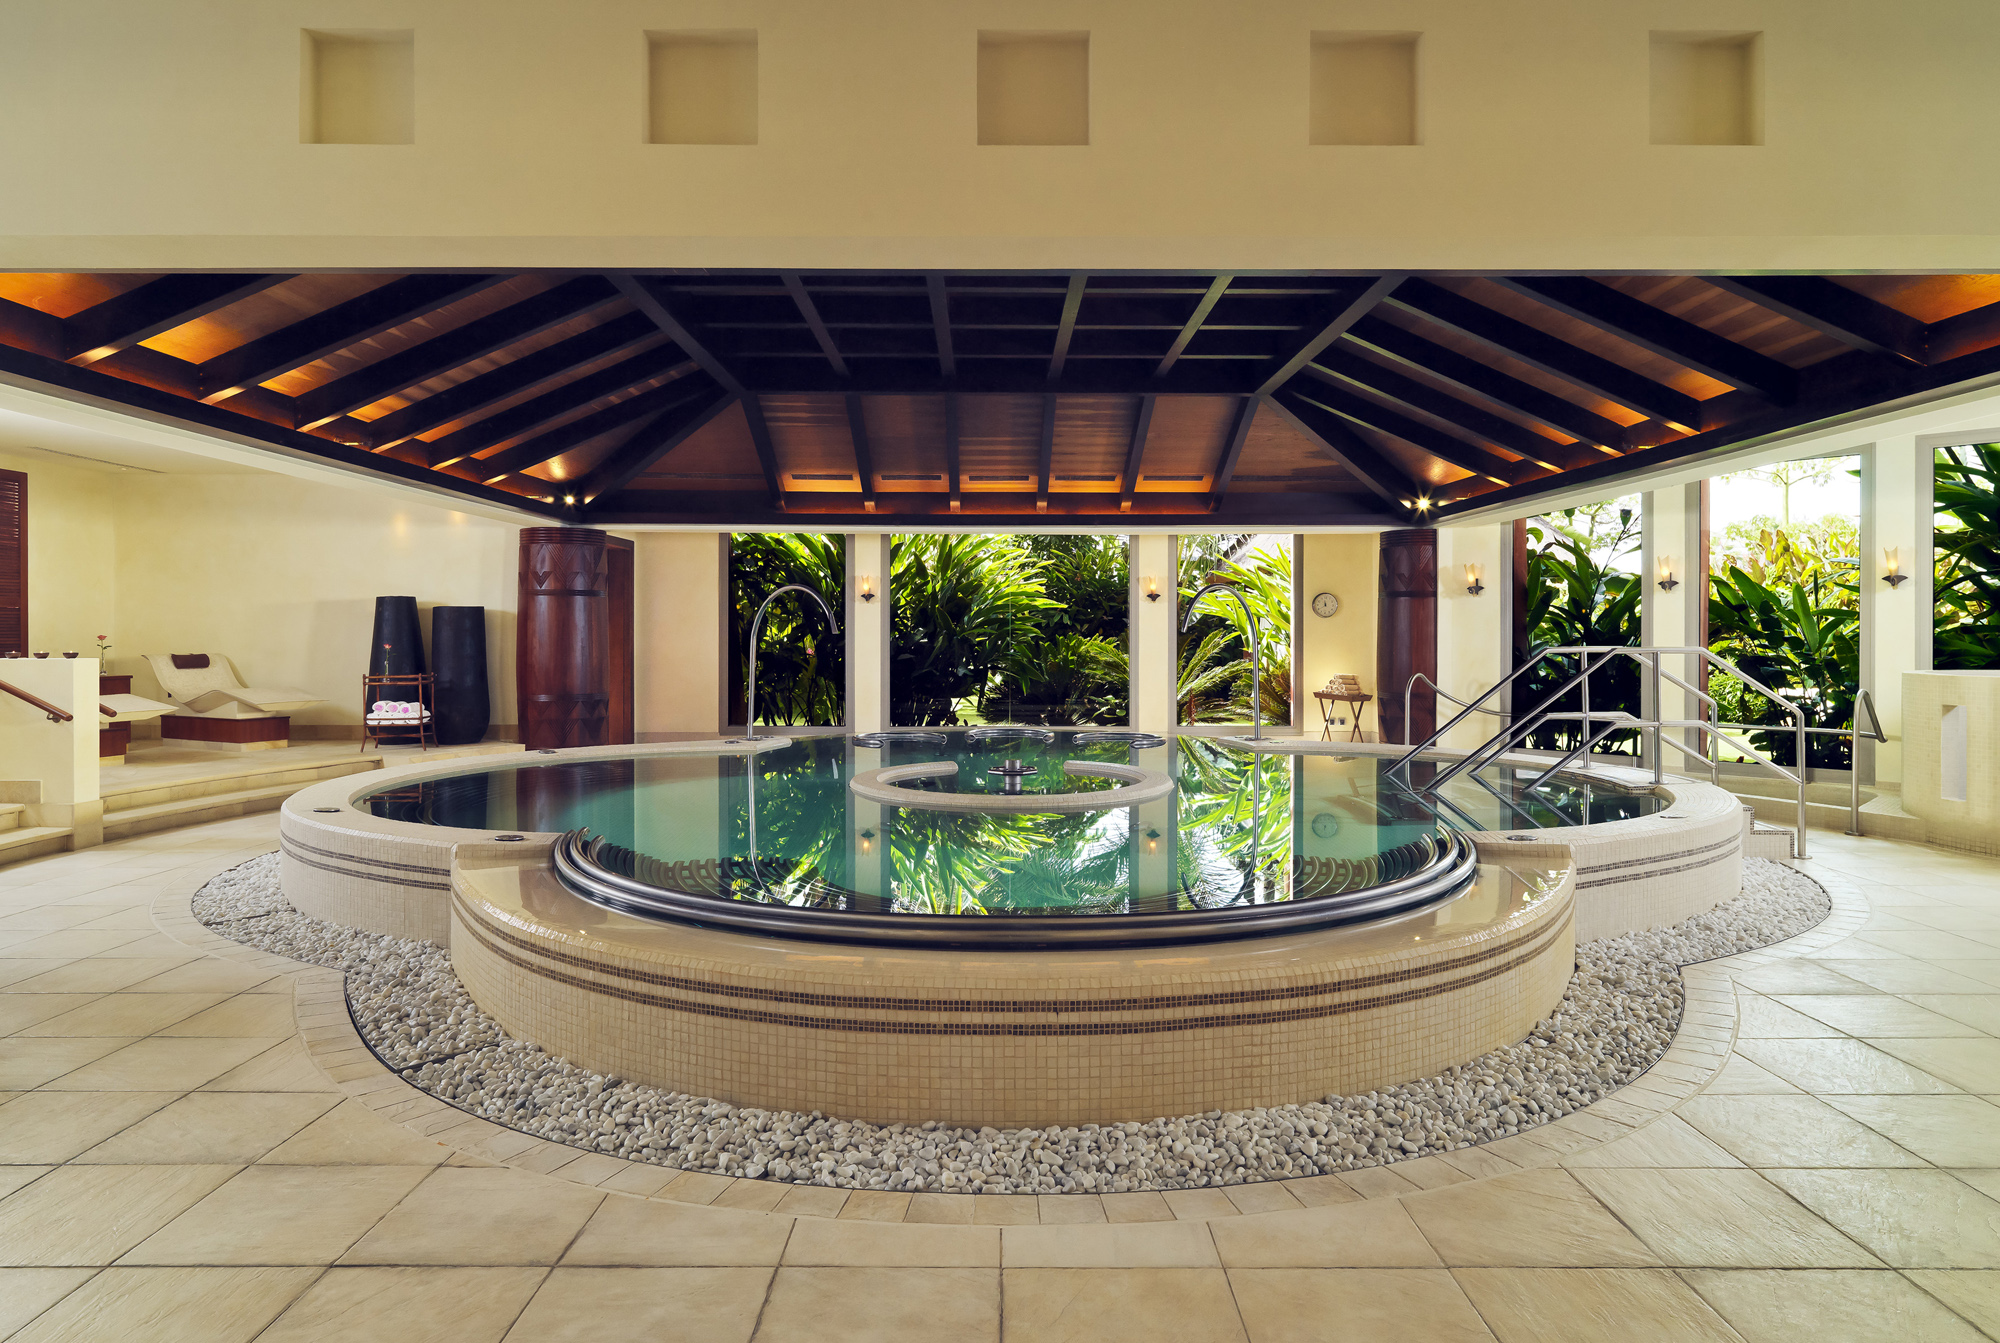 spa_hydrotherapy_pool_-_water_circuit